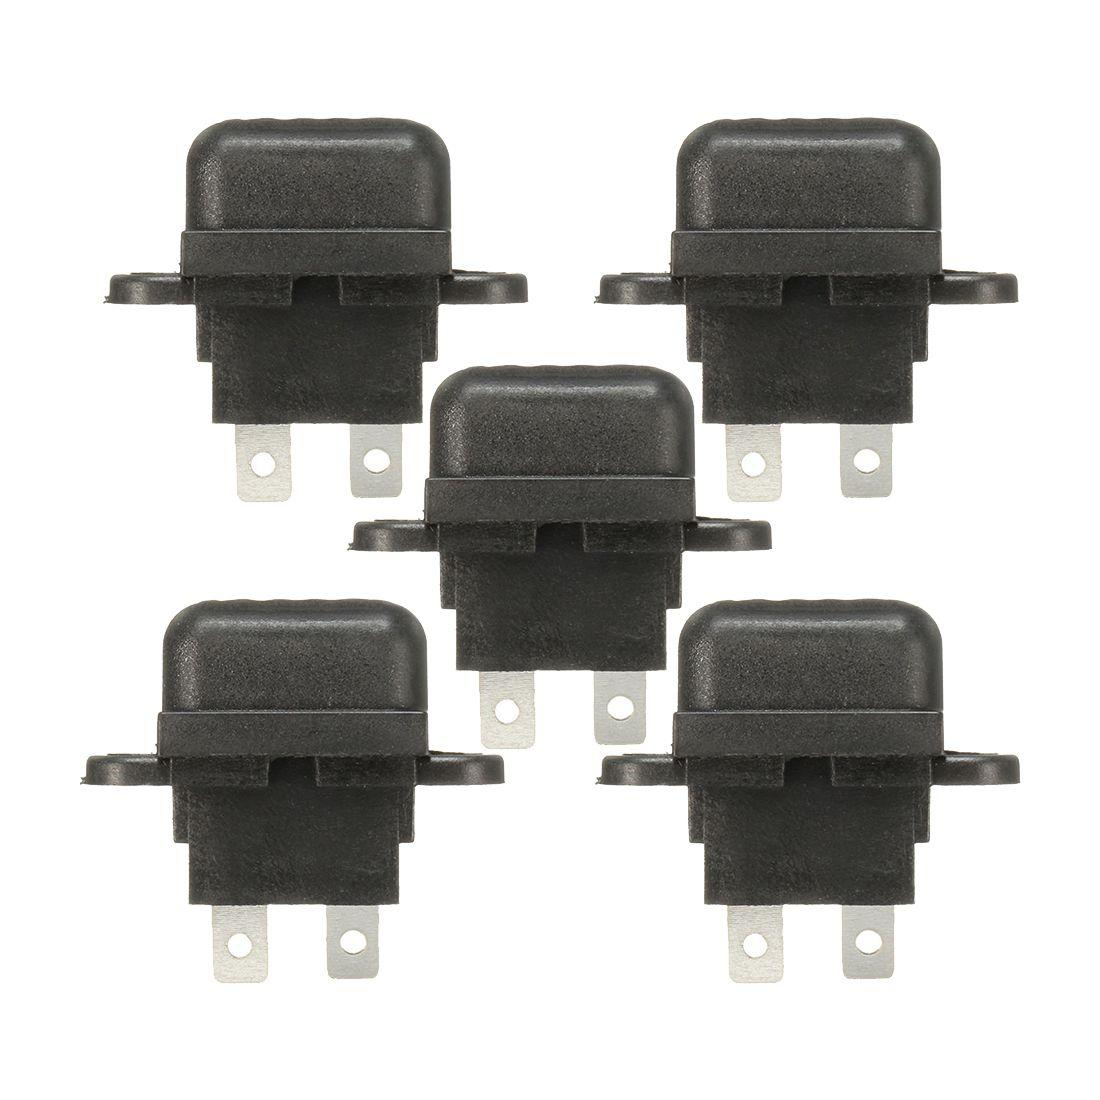 hight resolution of 5pcs 30a amp auto blade standard fuse holder box for car boat truck with cover